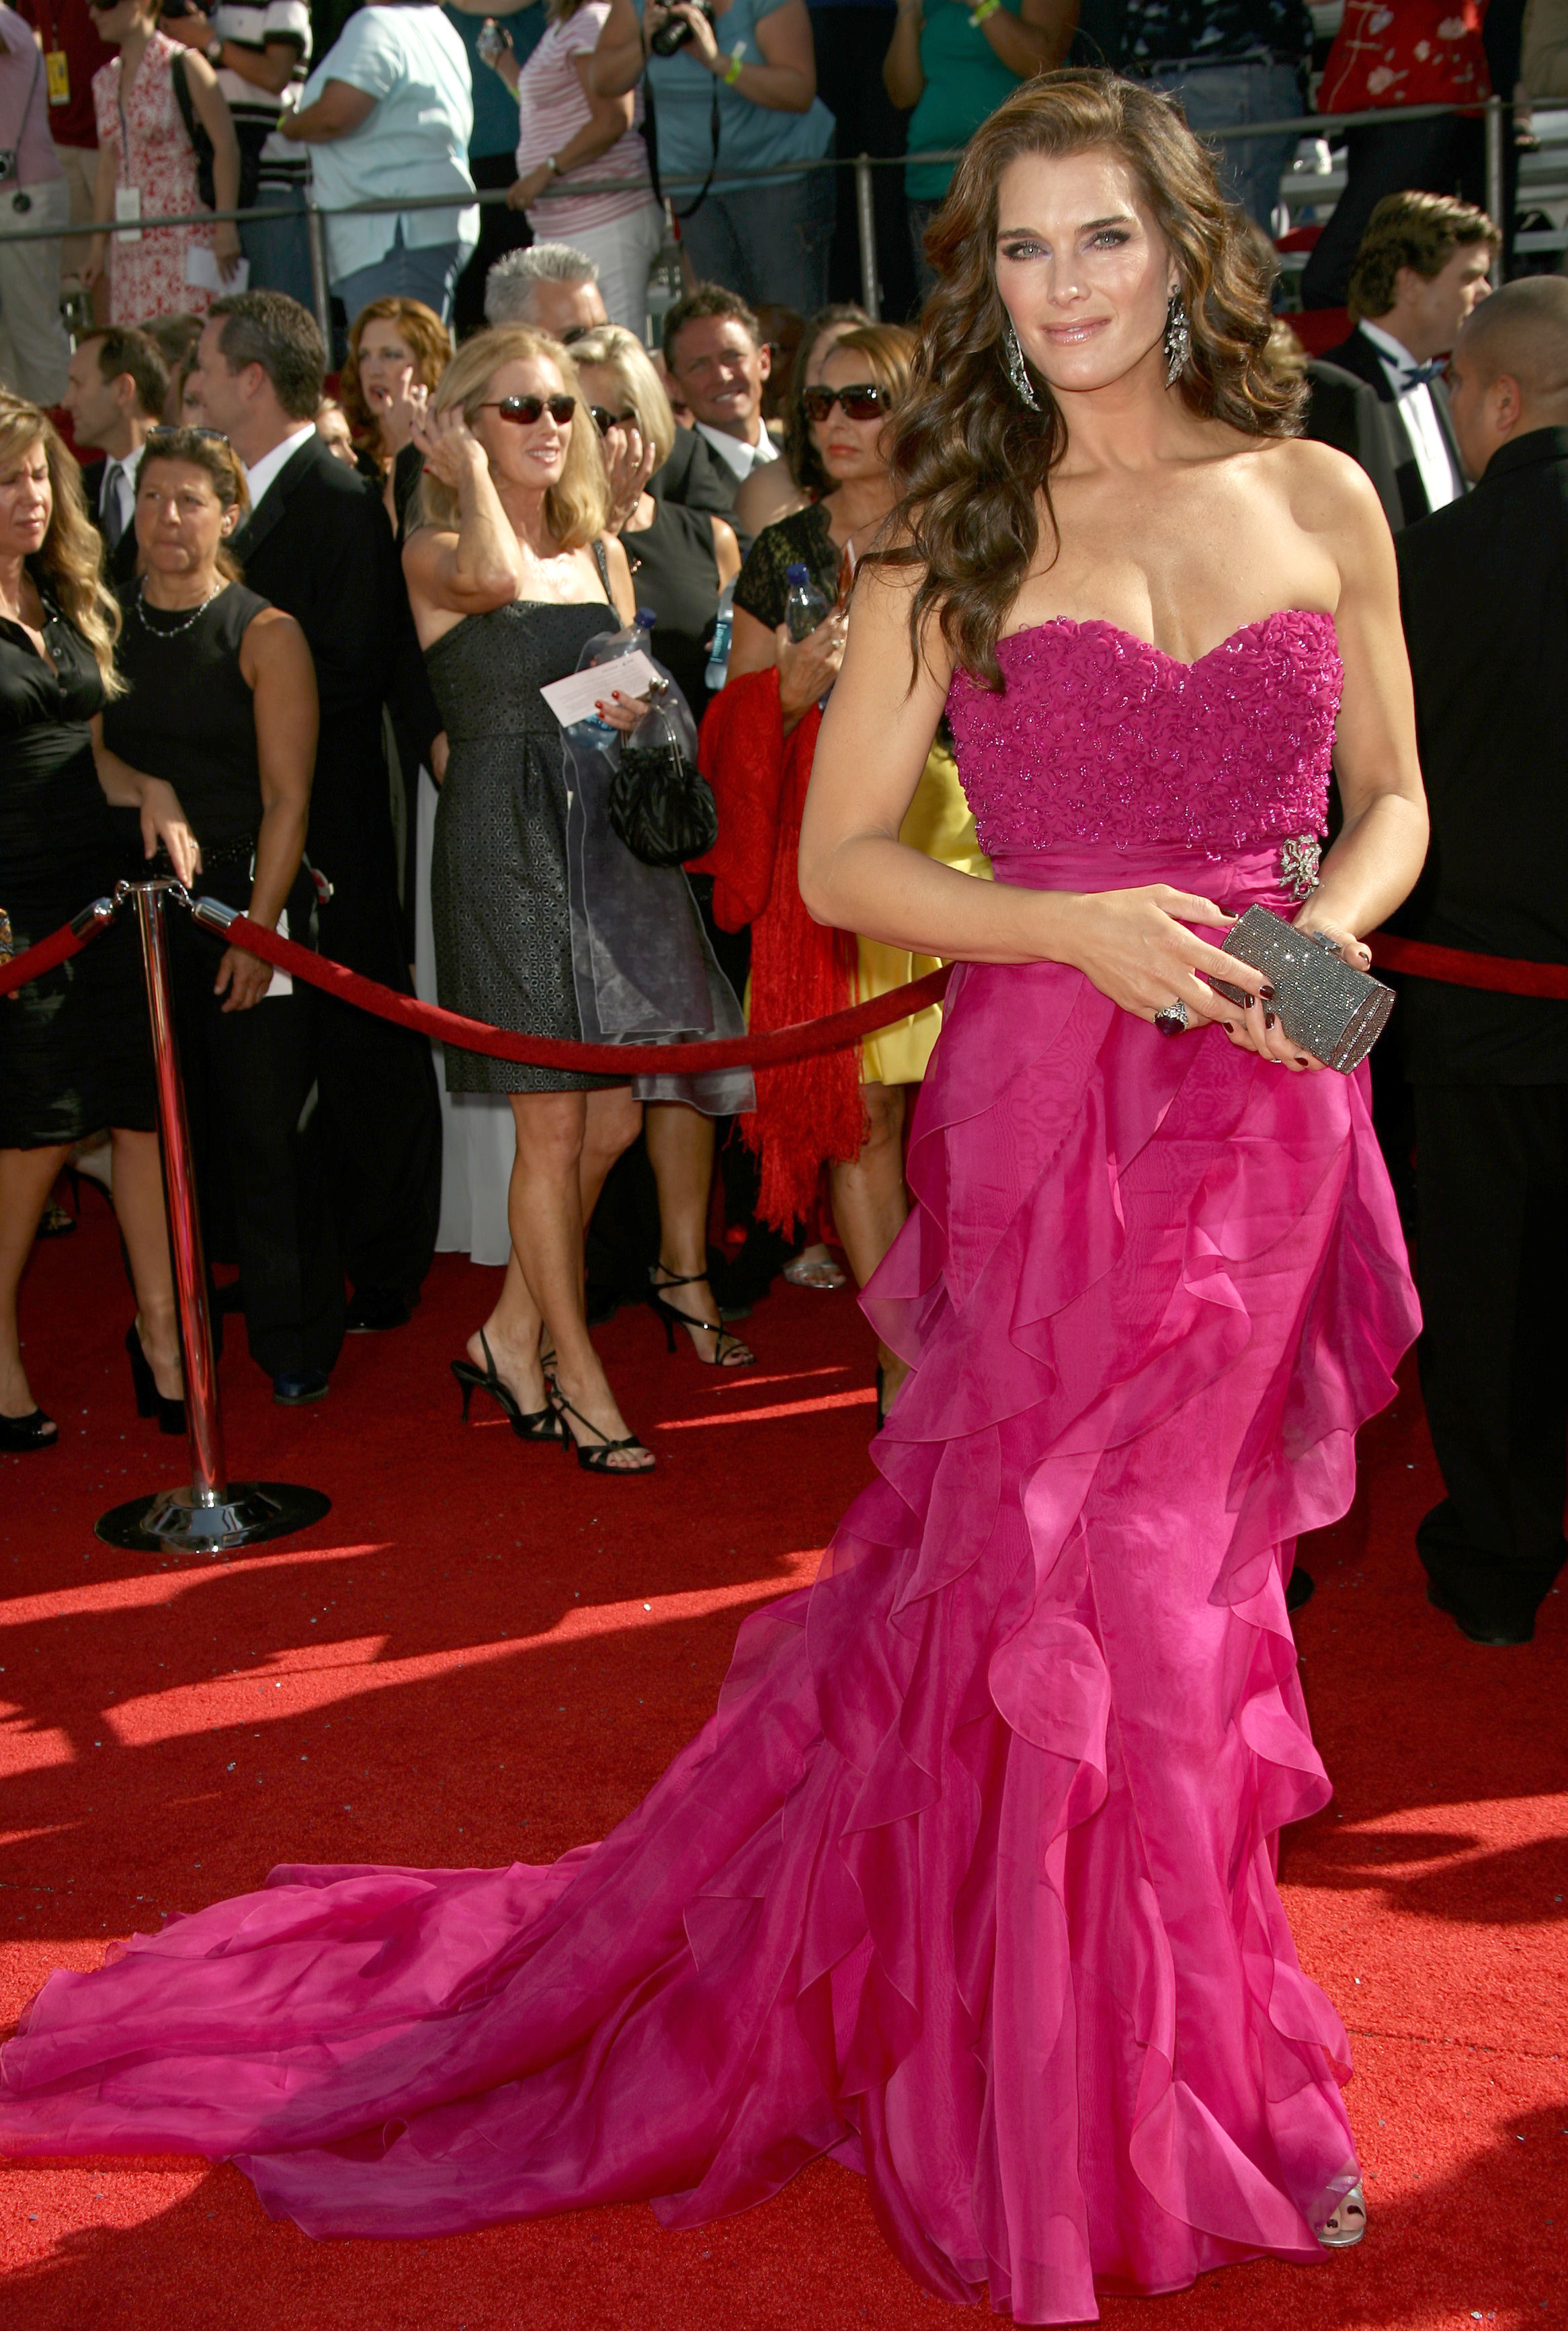 2473519bdfe Fashion Flashback - 2008 Primetime Emmys | Gallery | Wonderwall.com